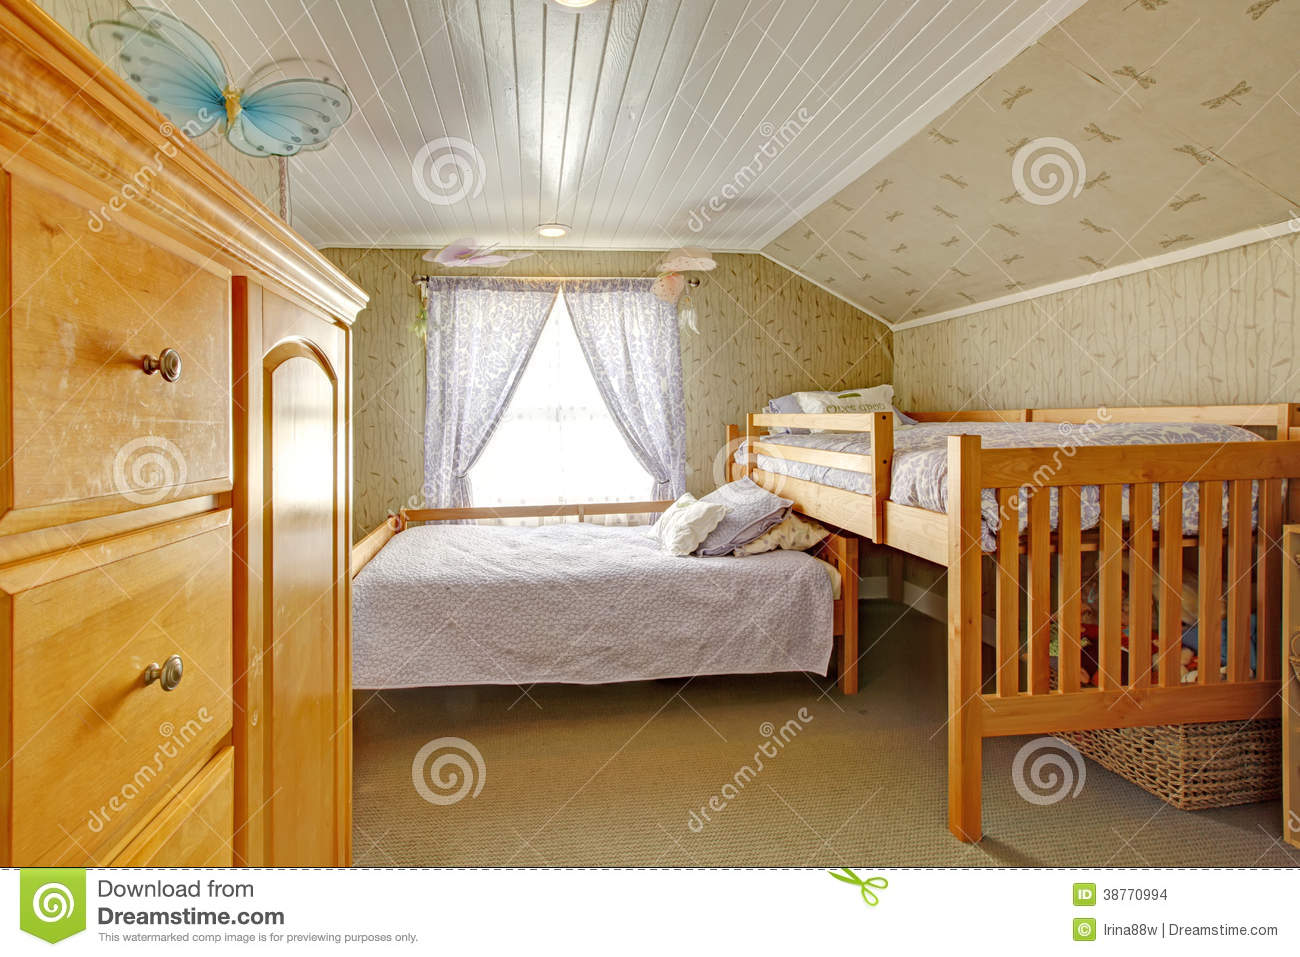 Vaulted Ceiling Bedroom With Low And High Beds Stock ...